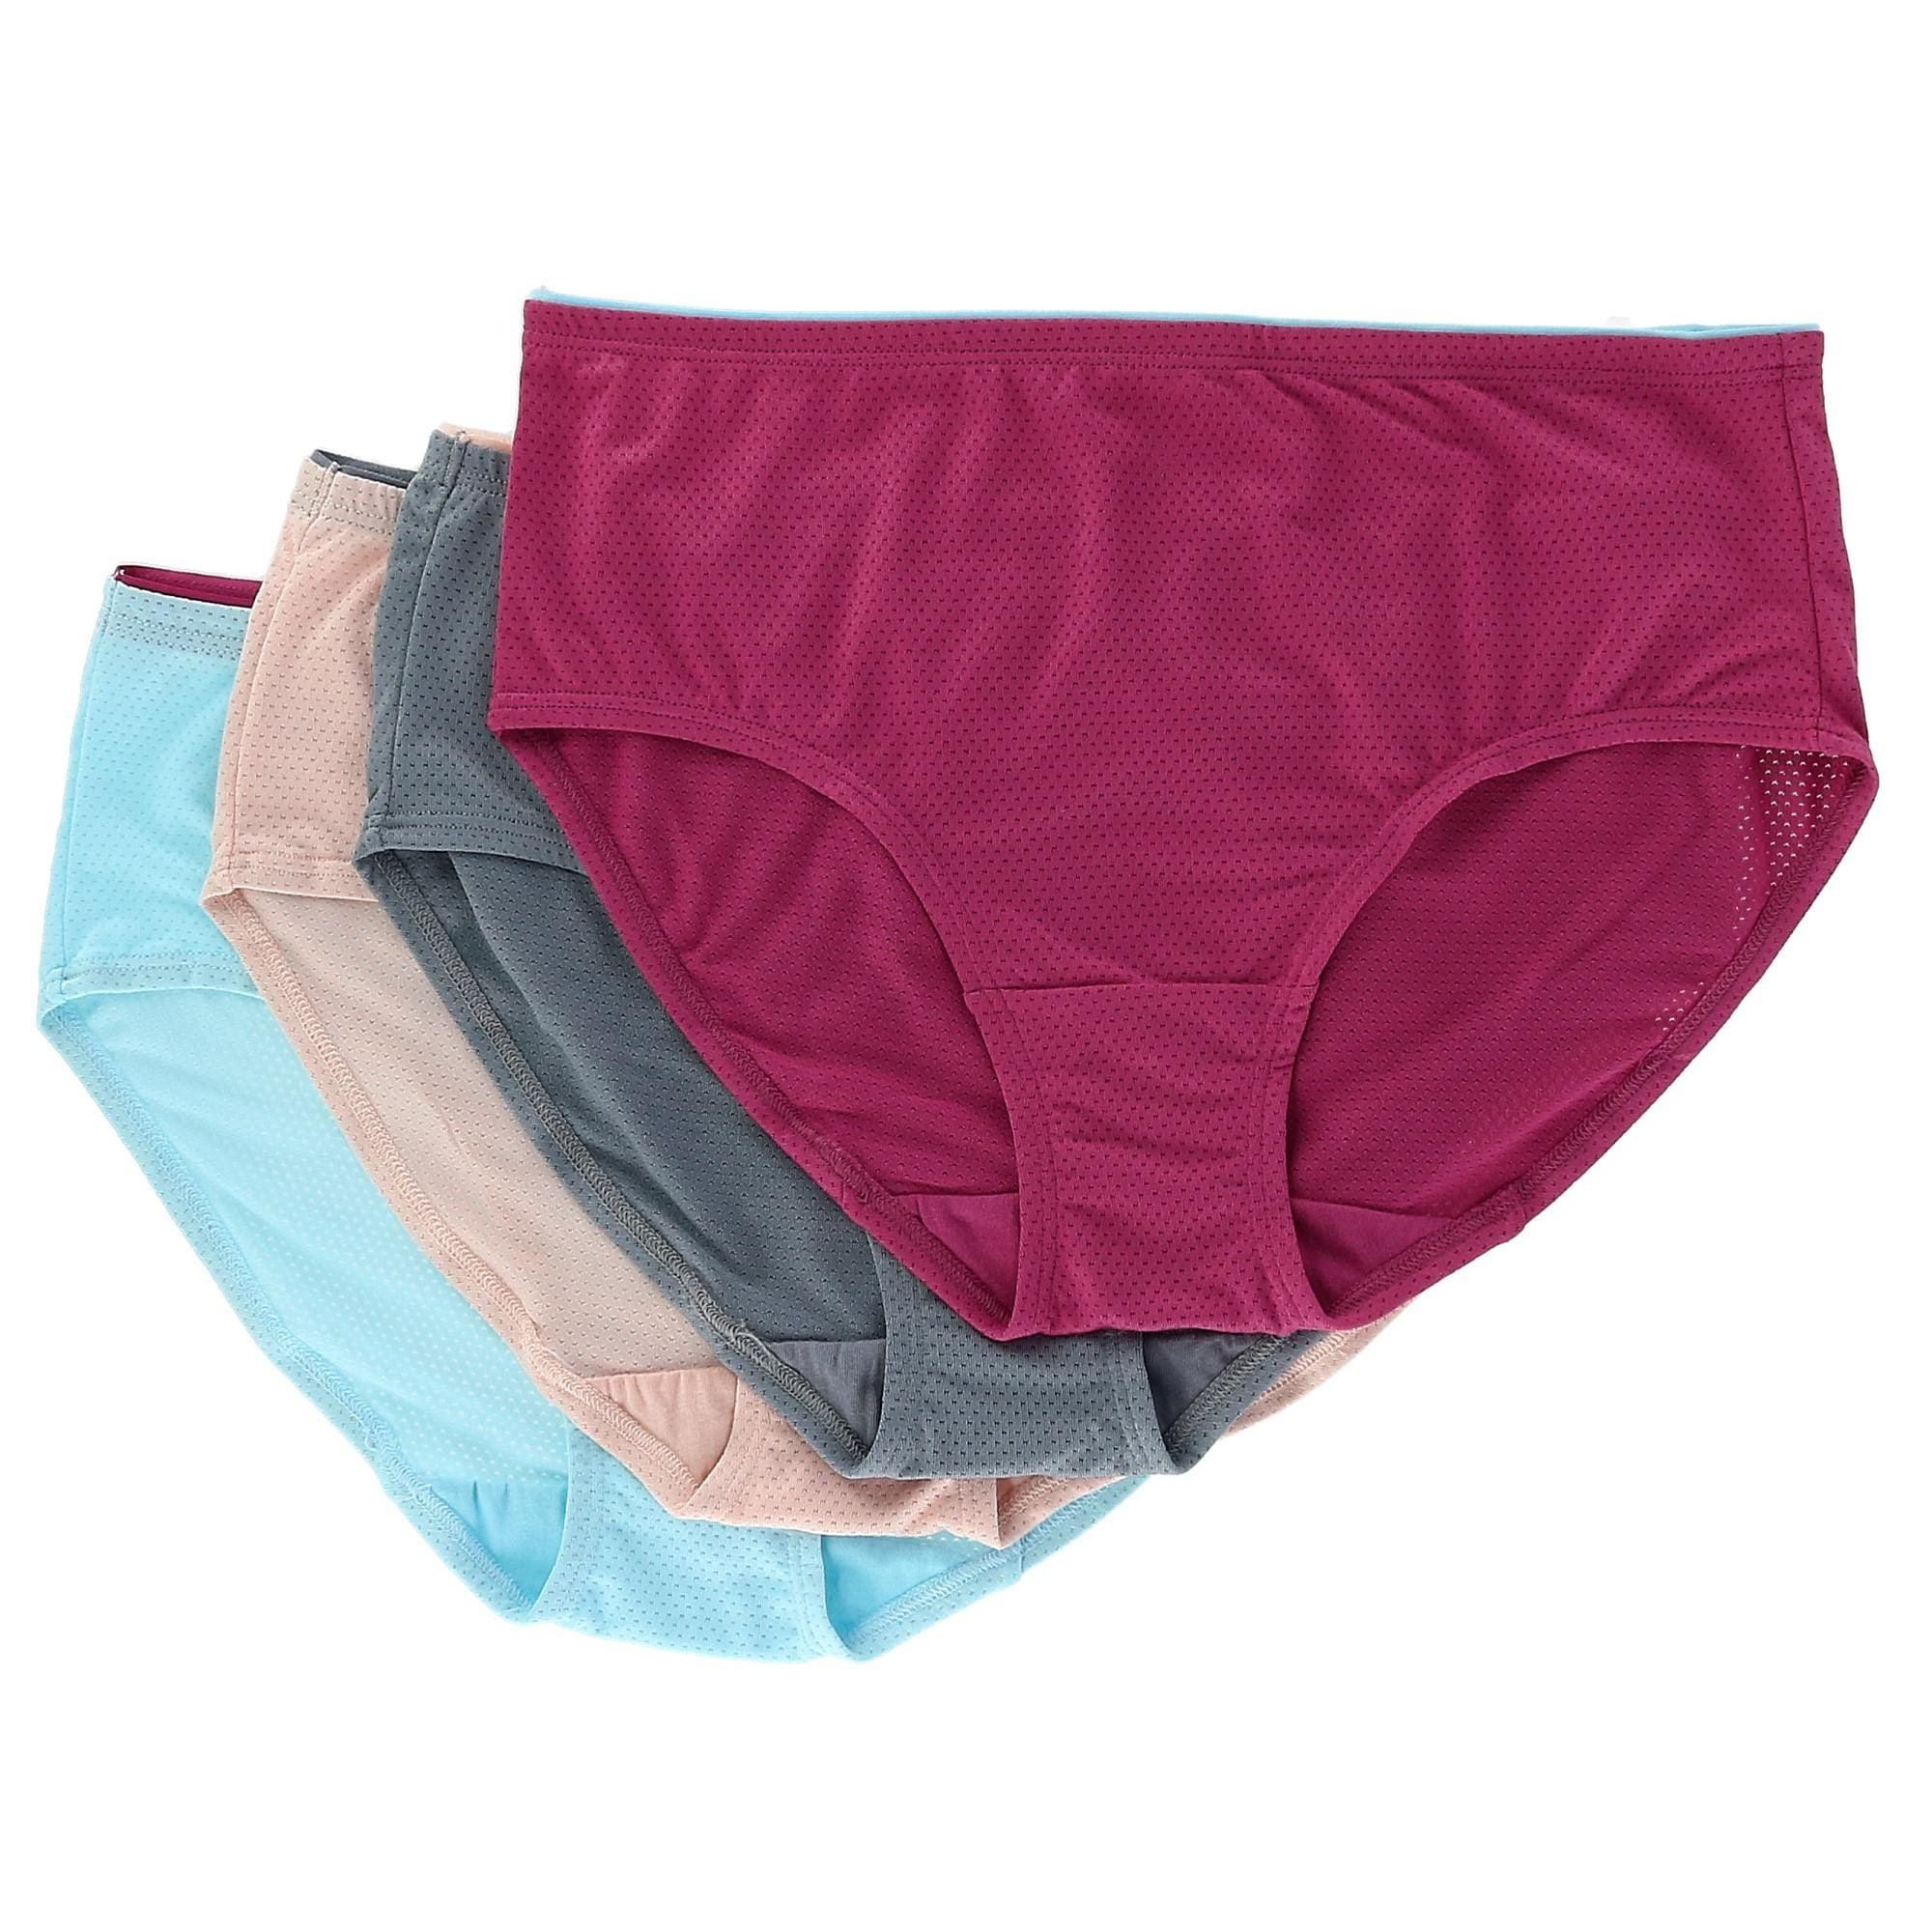 44af624f6d2f Buy Cotton Panties Online at Overstock | Our Best Intimates Deals